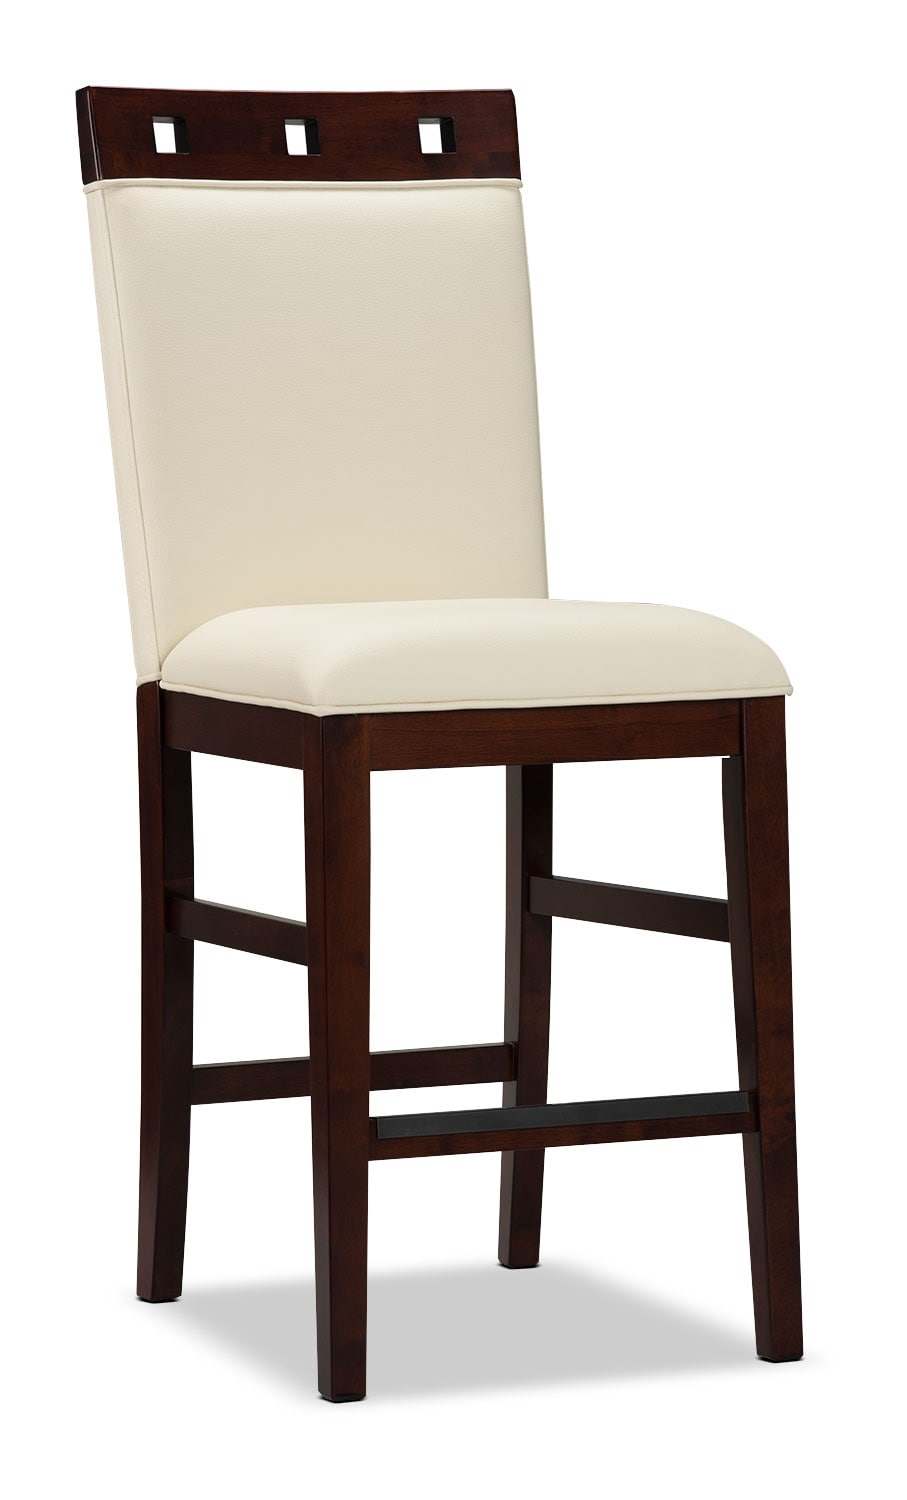 Dining Room Furniture - Zeno Counter-Height Dining Chair – Wood Top